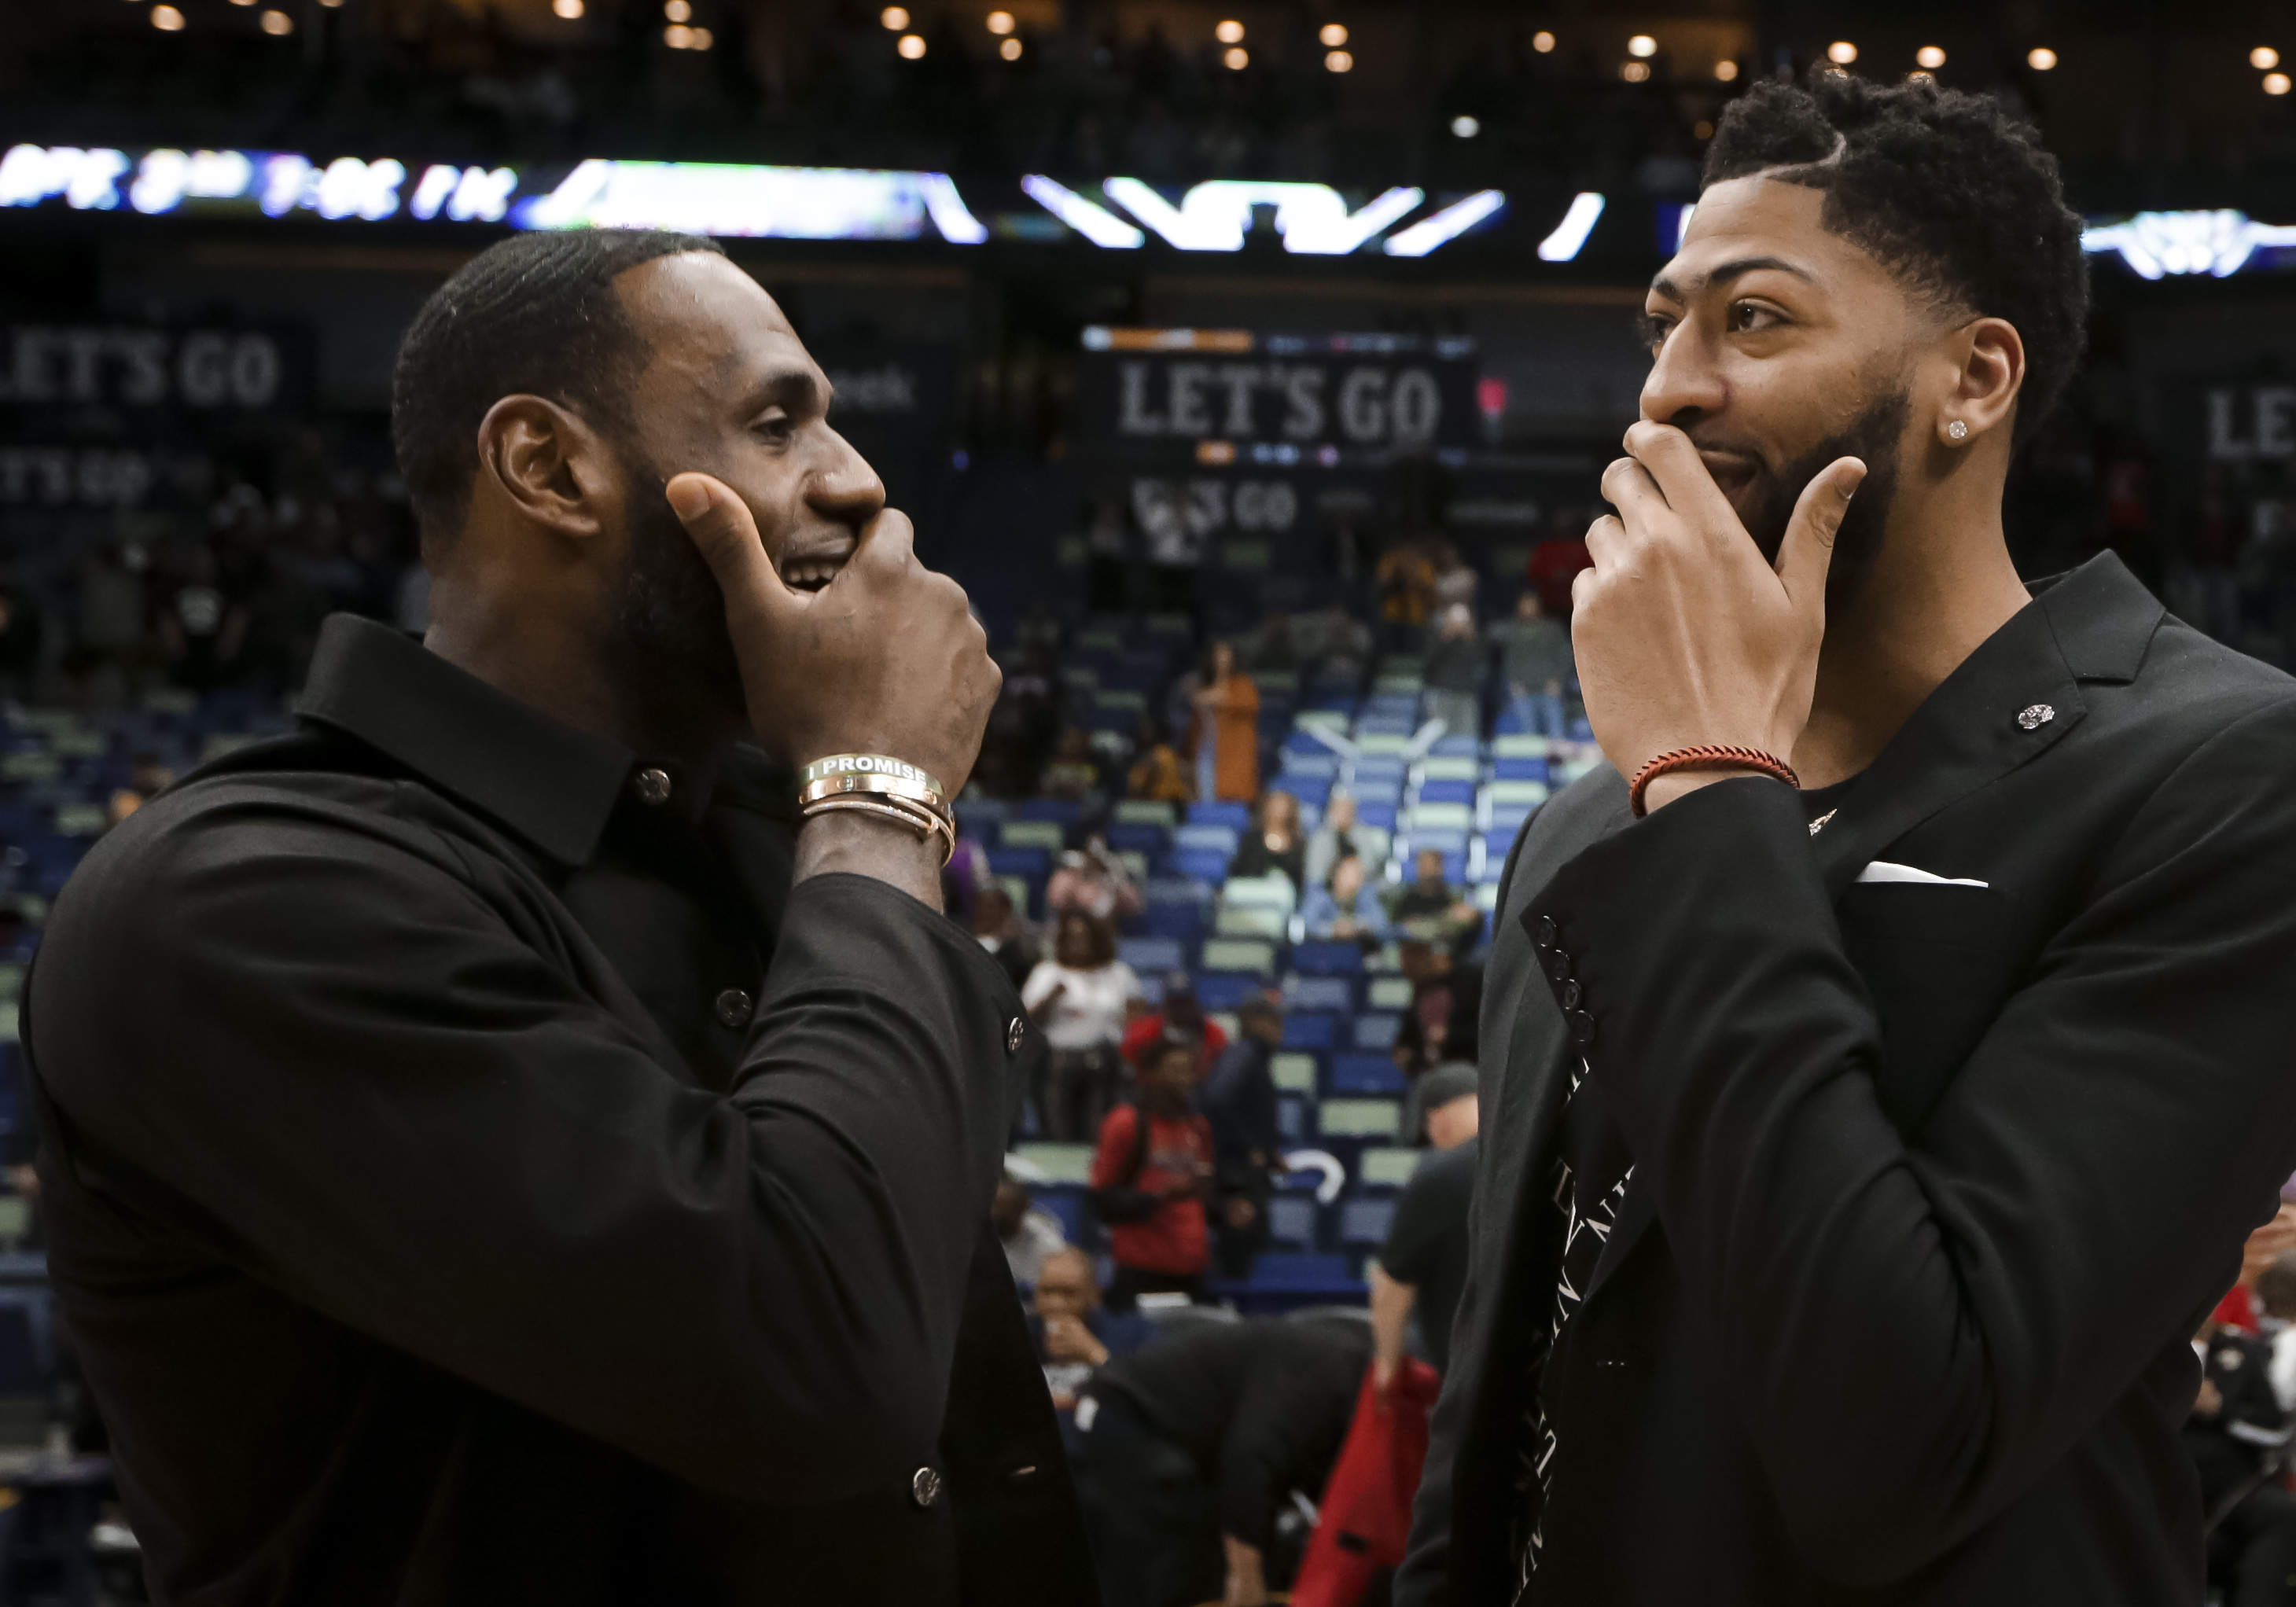 Vegas sportsbook took $10,000 Lakers bet three hours before Anthony Davis trade